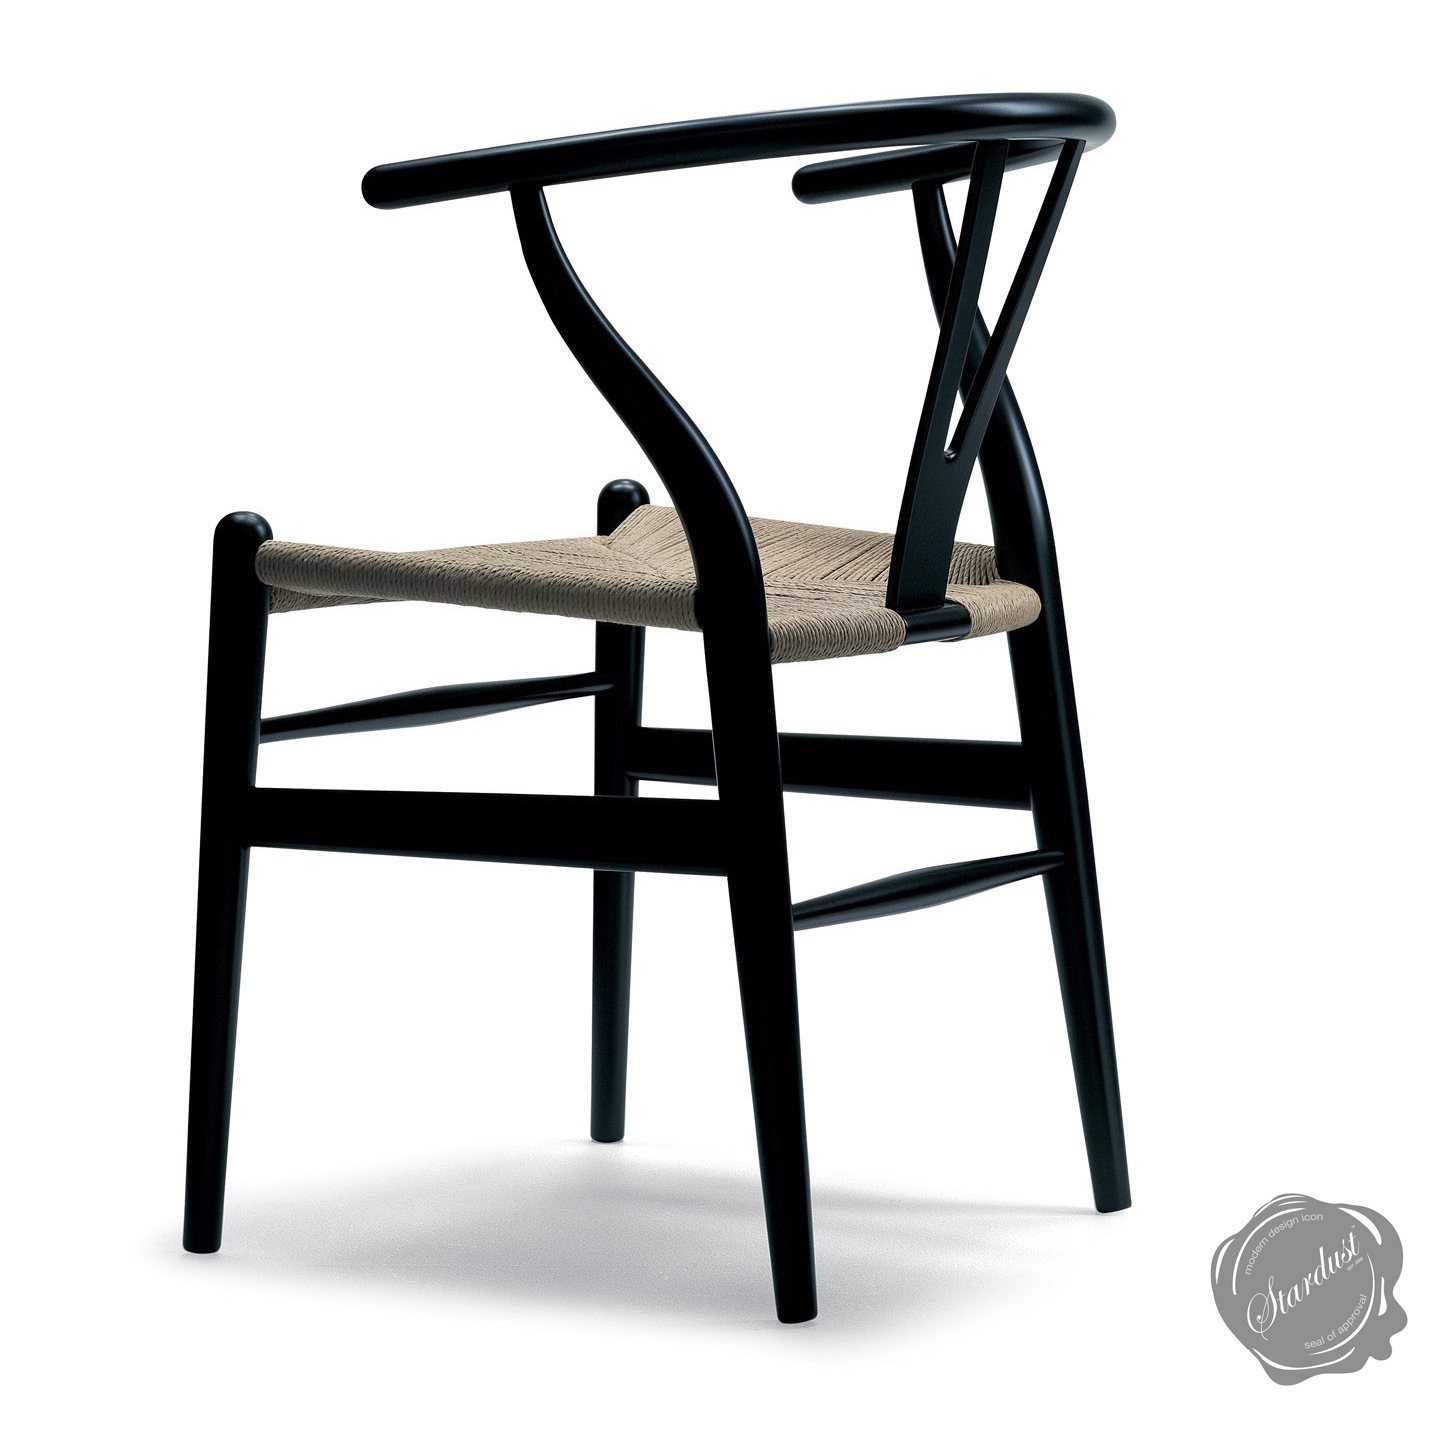 Decon wishbone chair carl hansen production